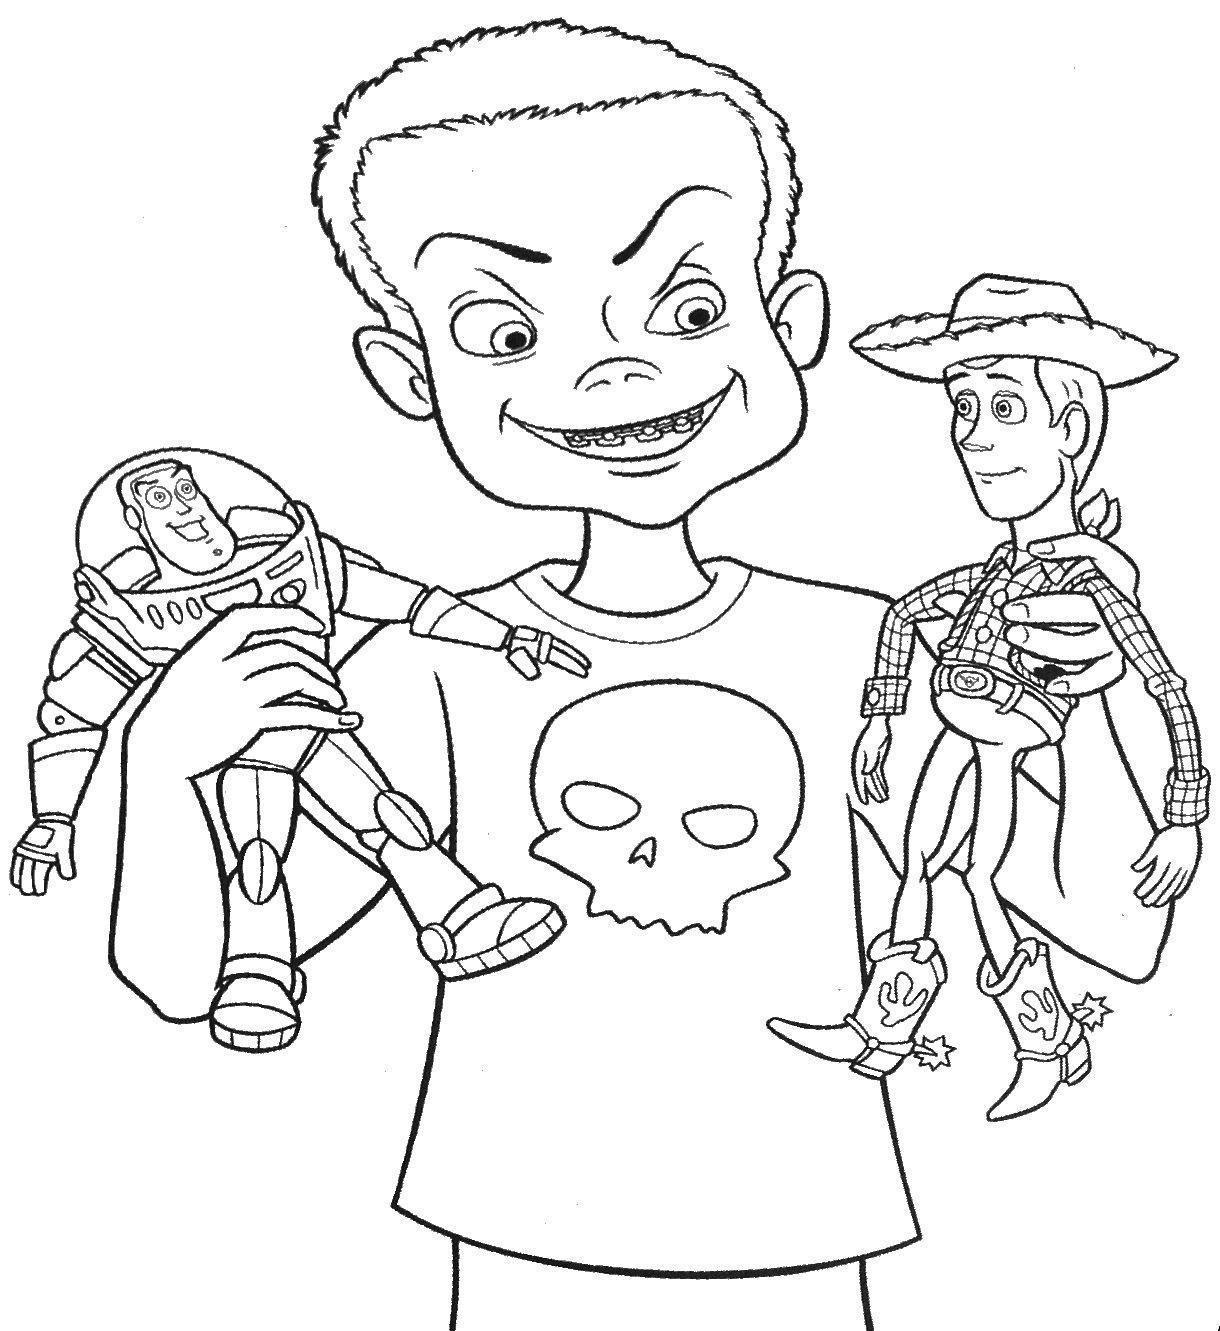 Amazing Free Printable Toy Story Cartoon Coloring Pages For Kids